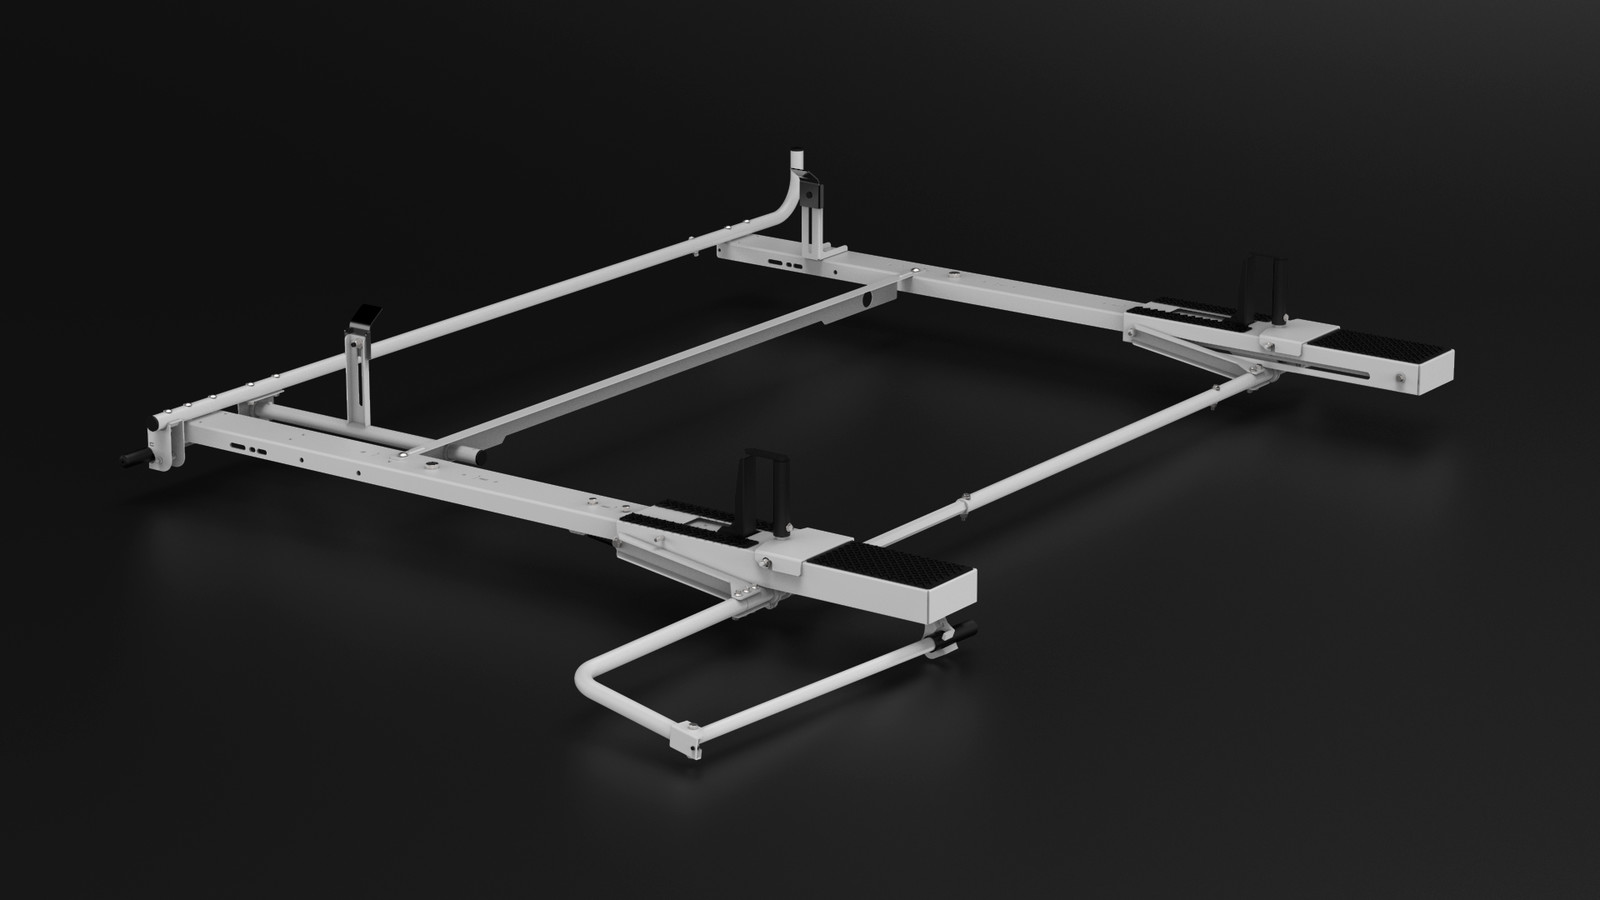 Kargo Masters Ladder Rack Solid Works Renders